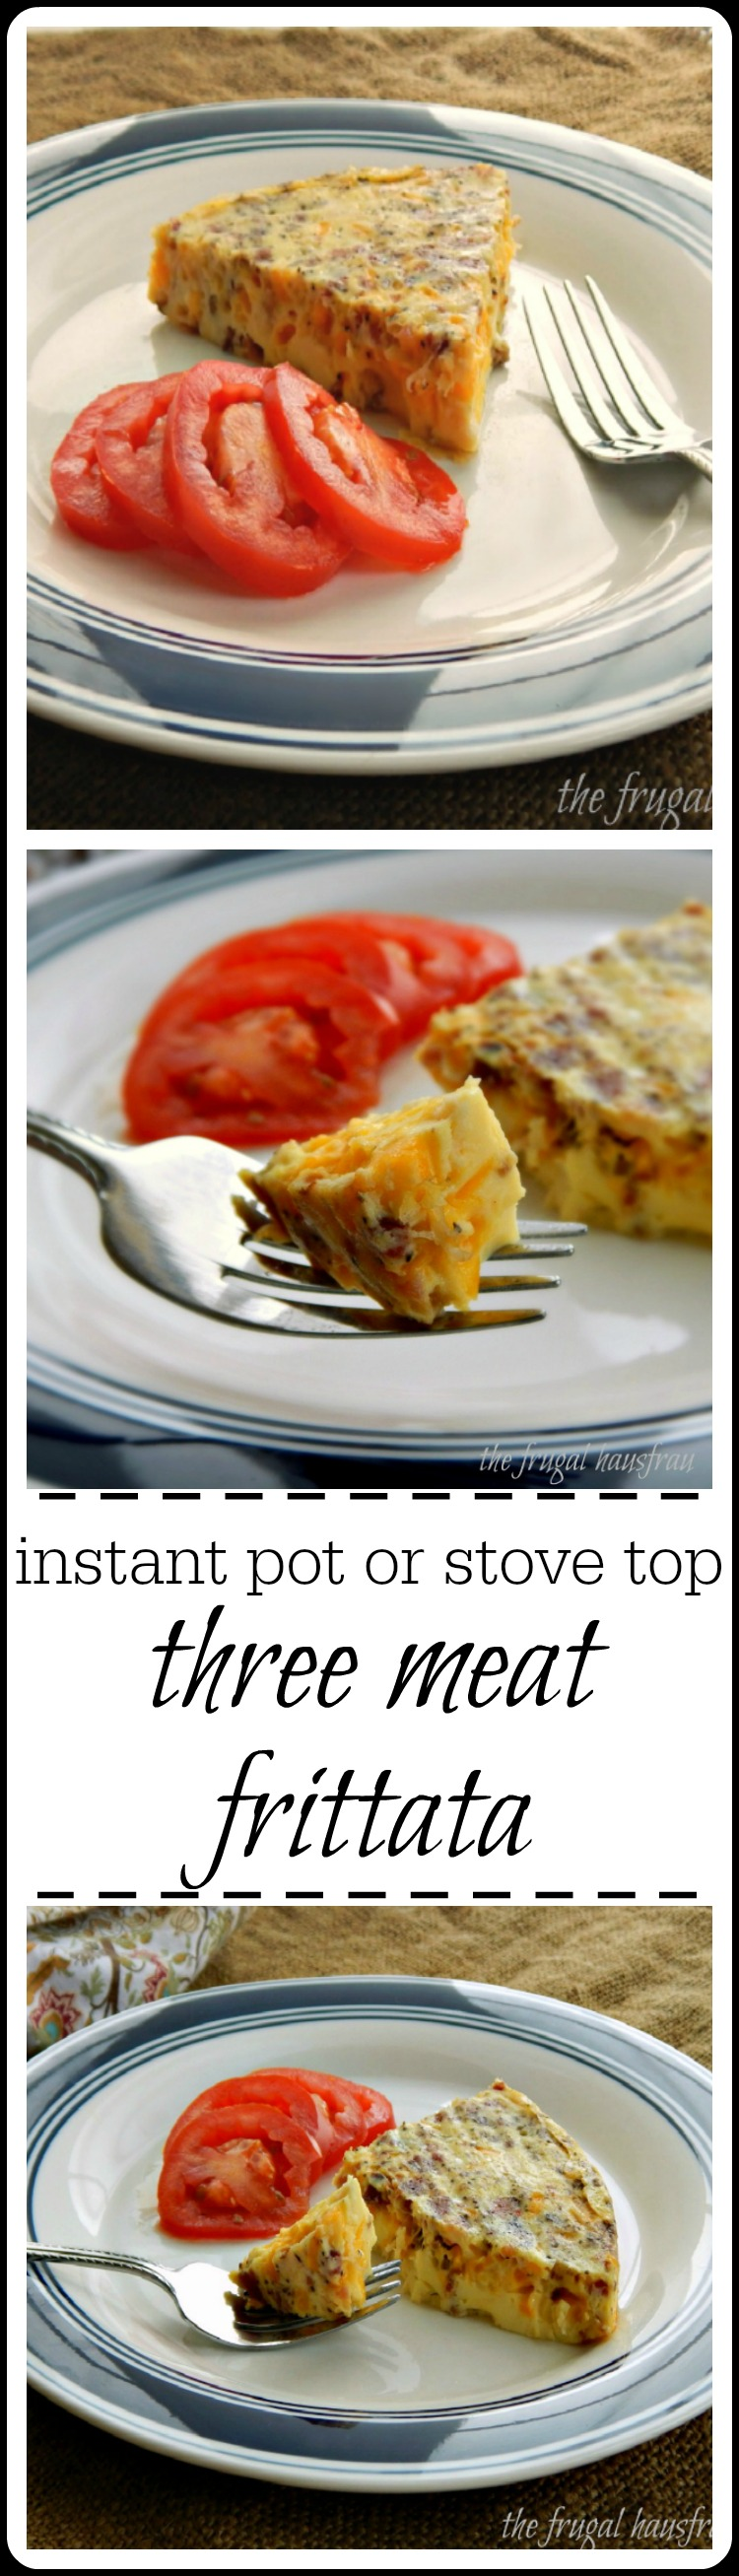 Instant Pot or Stovetop Three Meat Frittata - this is for all those meat lovers in your life that think frittatas are too frou-frou! The combo of meat & cheese is delish!! #MeatloversFrittata #ThreeMeatFrittata #BaconSausageFrittata